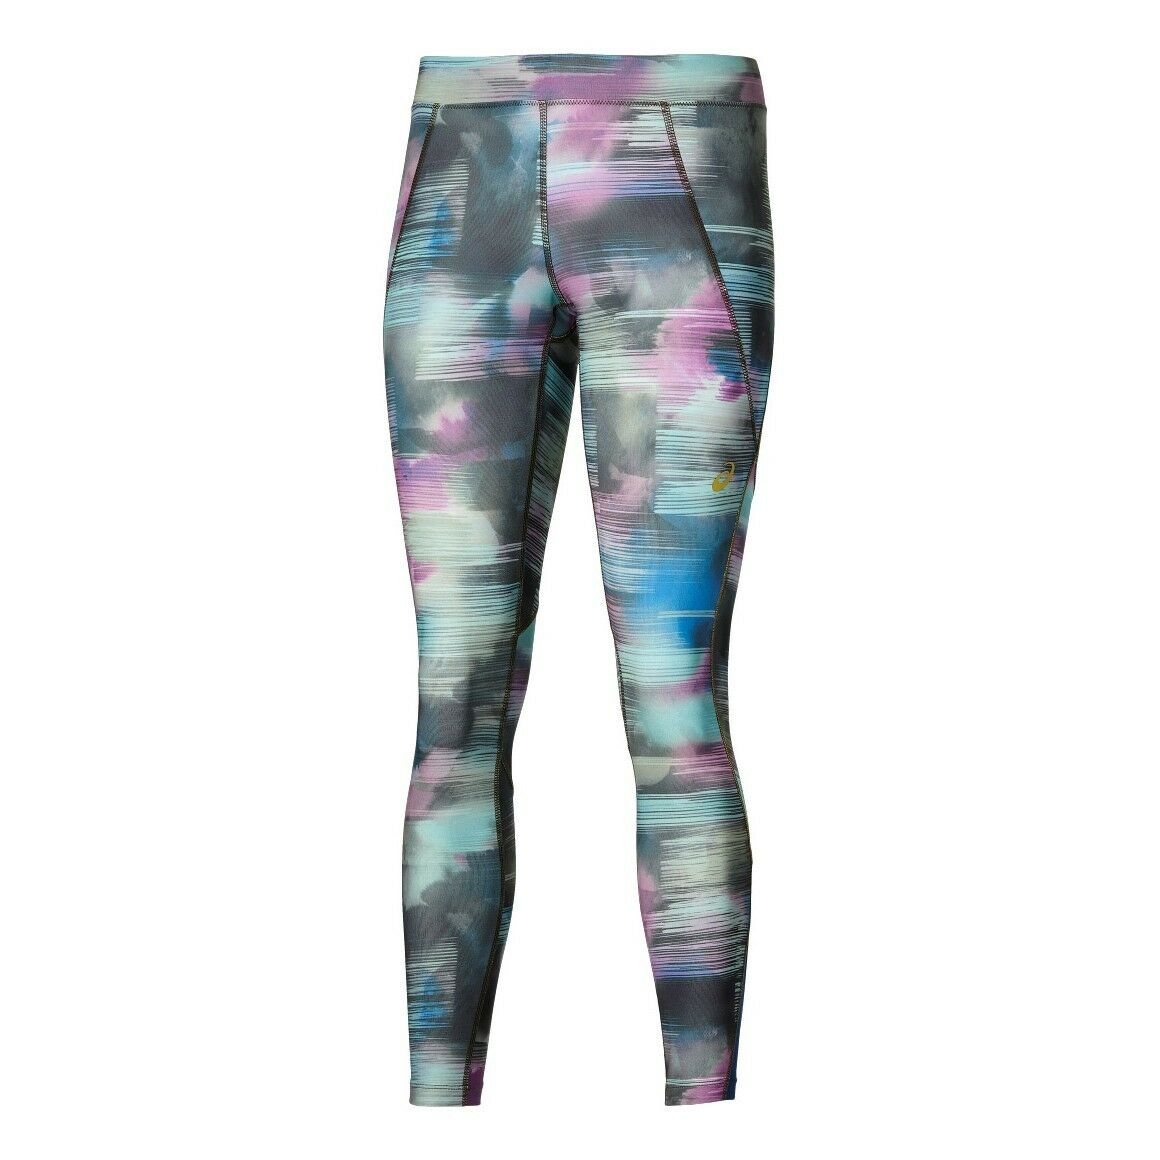 Asics Graphic 26in Fitness & Training Running Tights - Women's